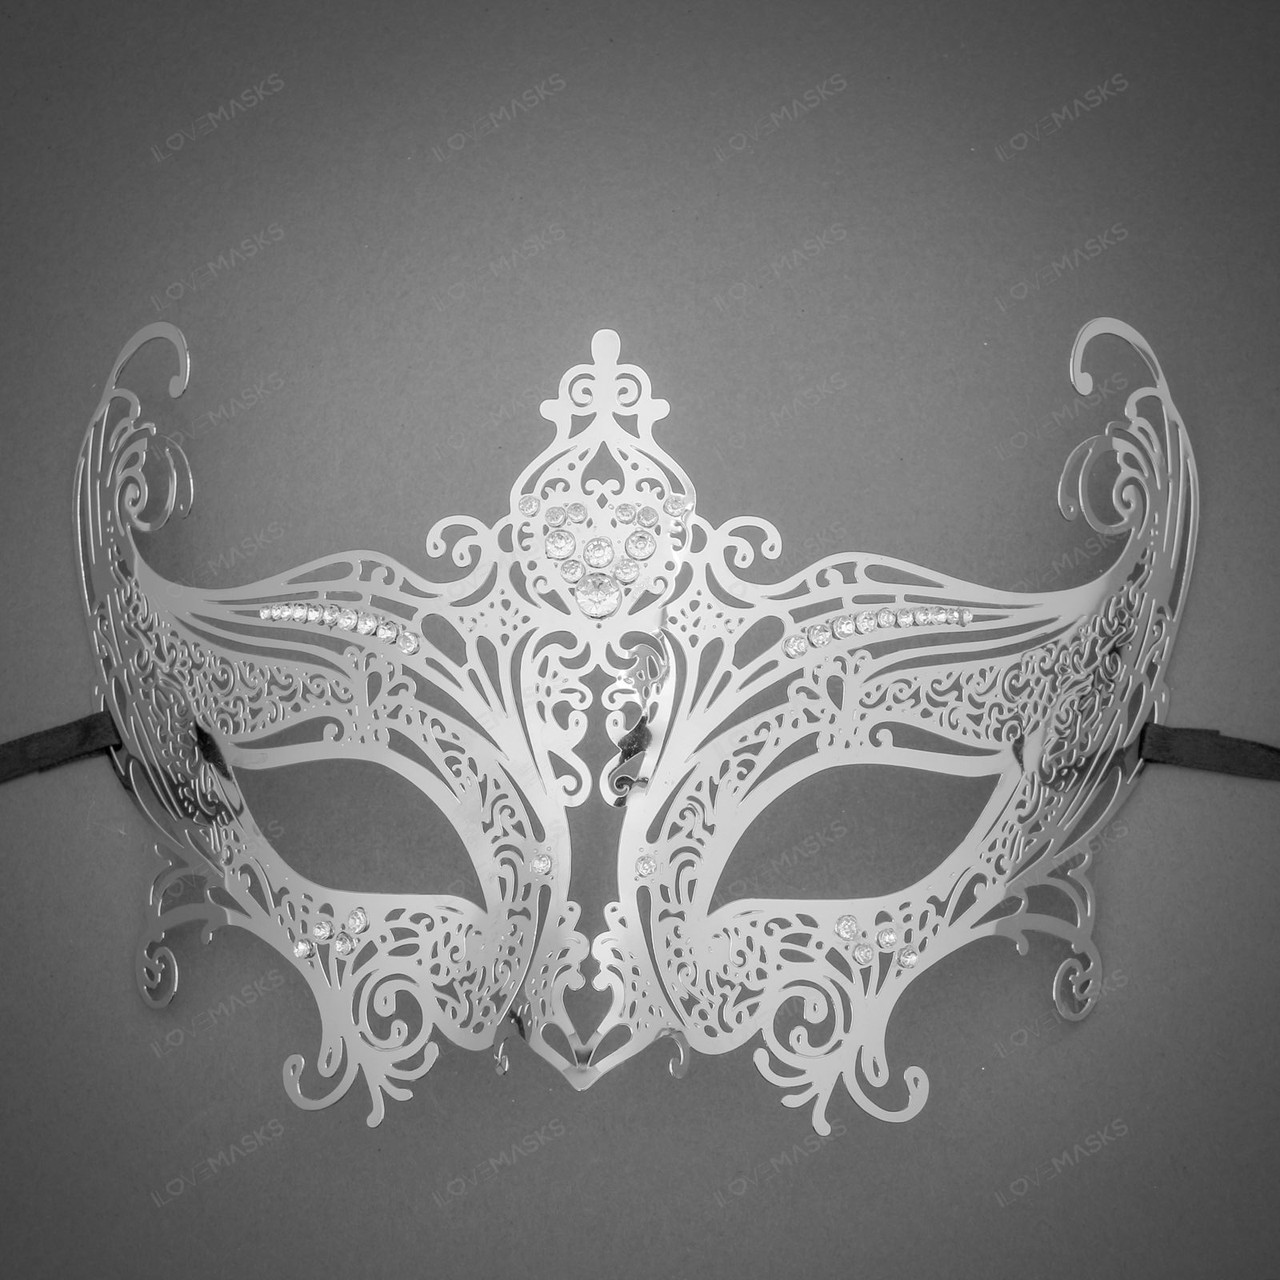 Royal Masquerade Masks